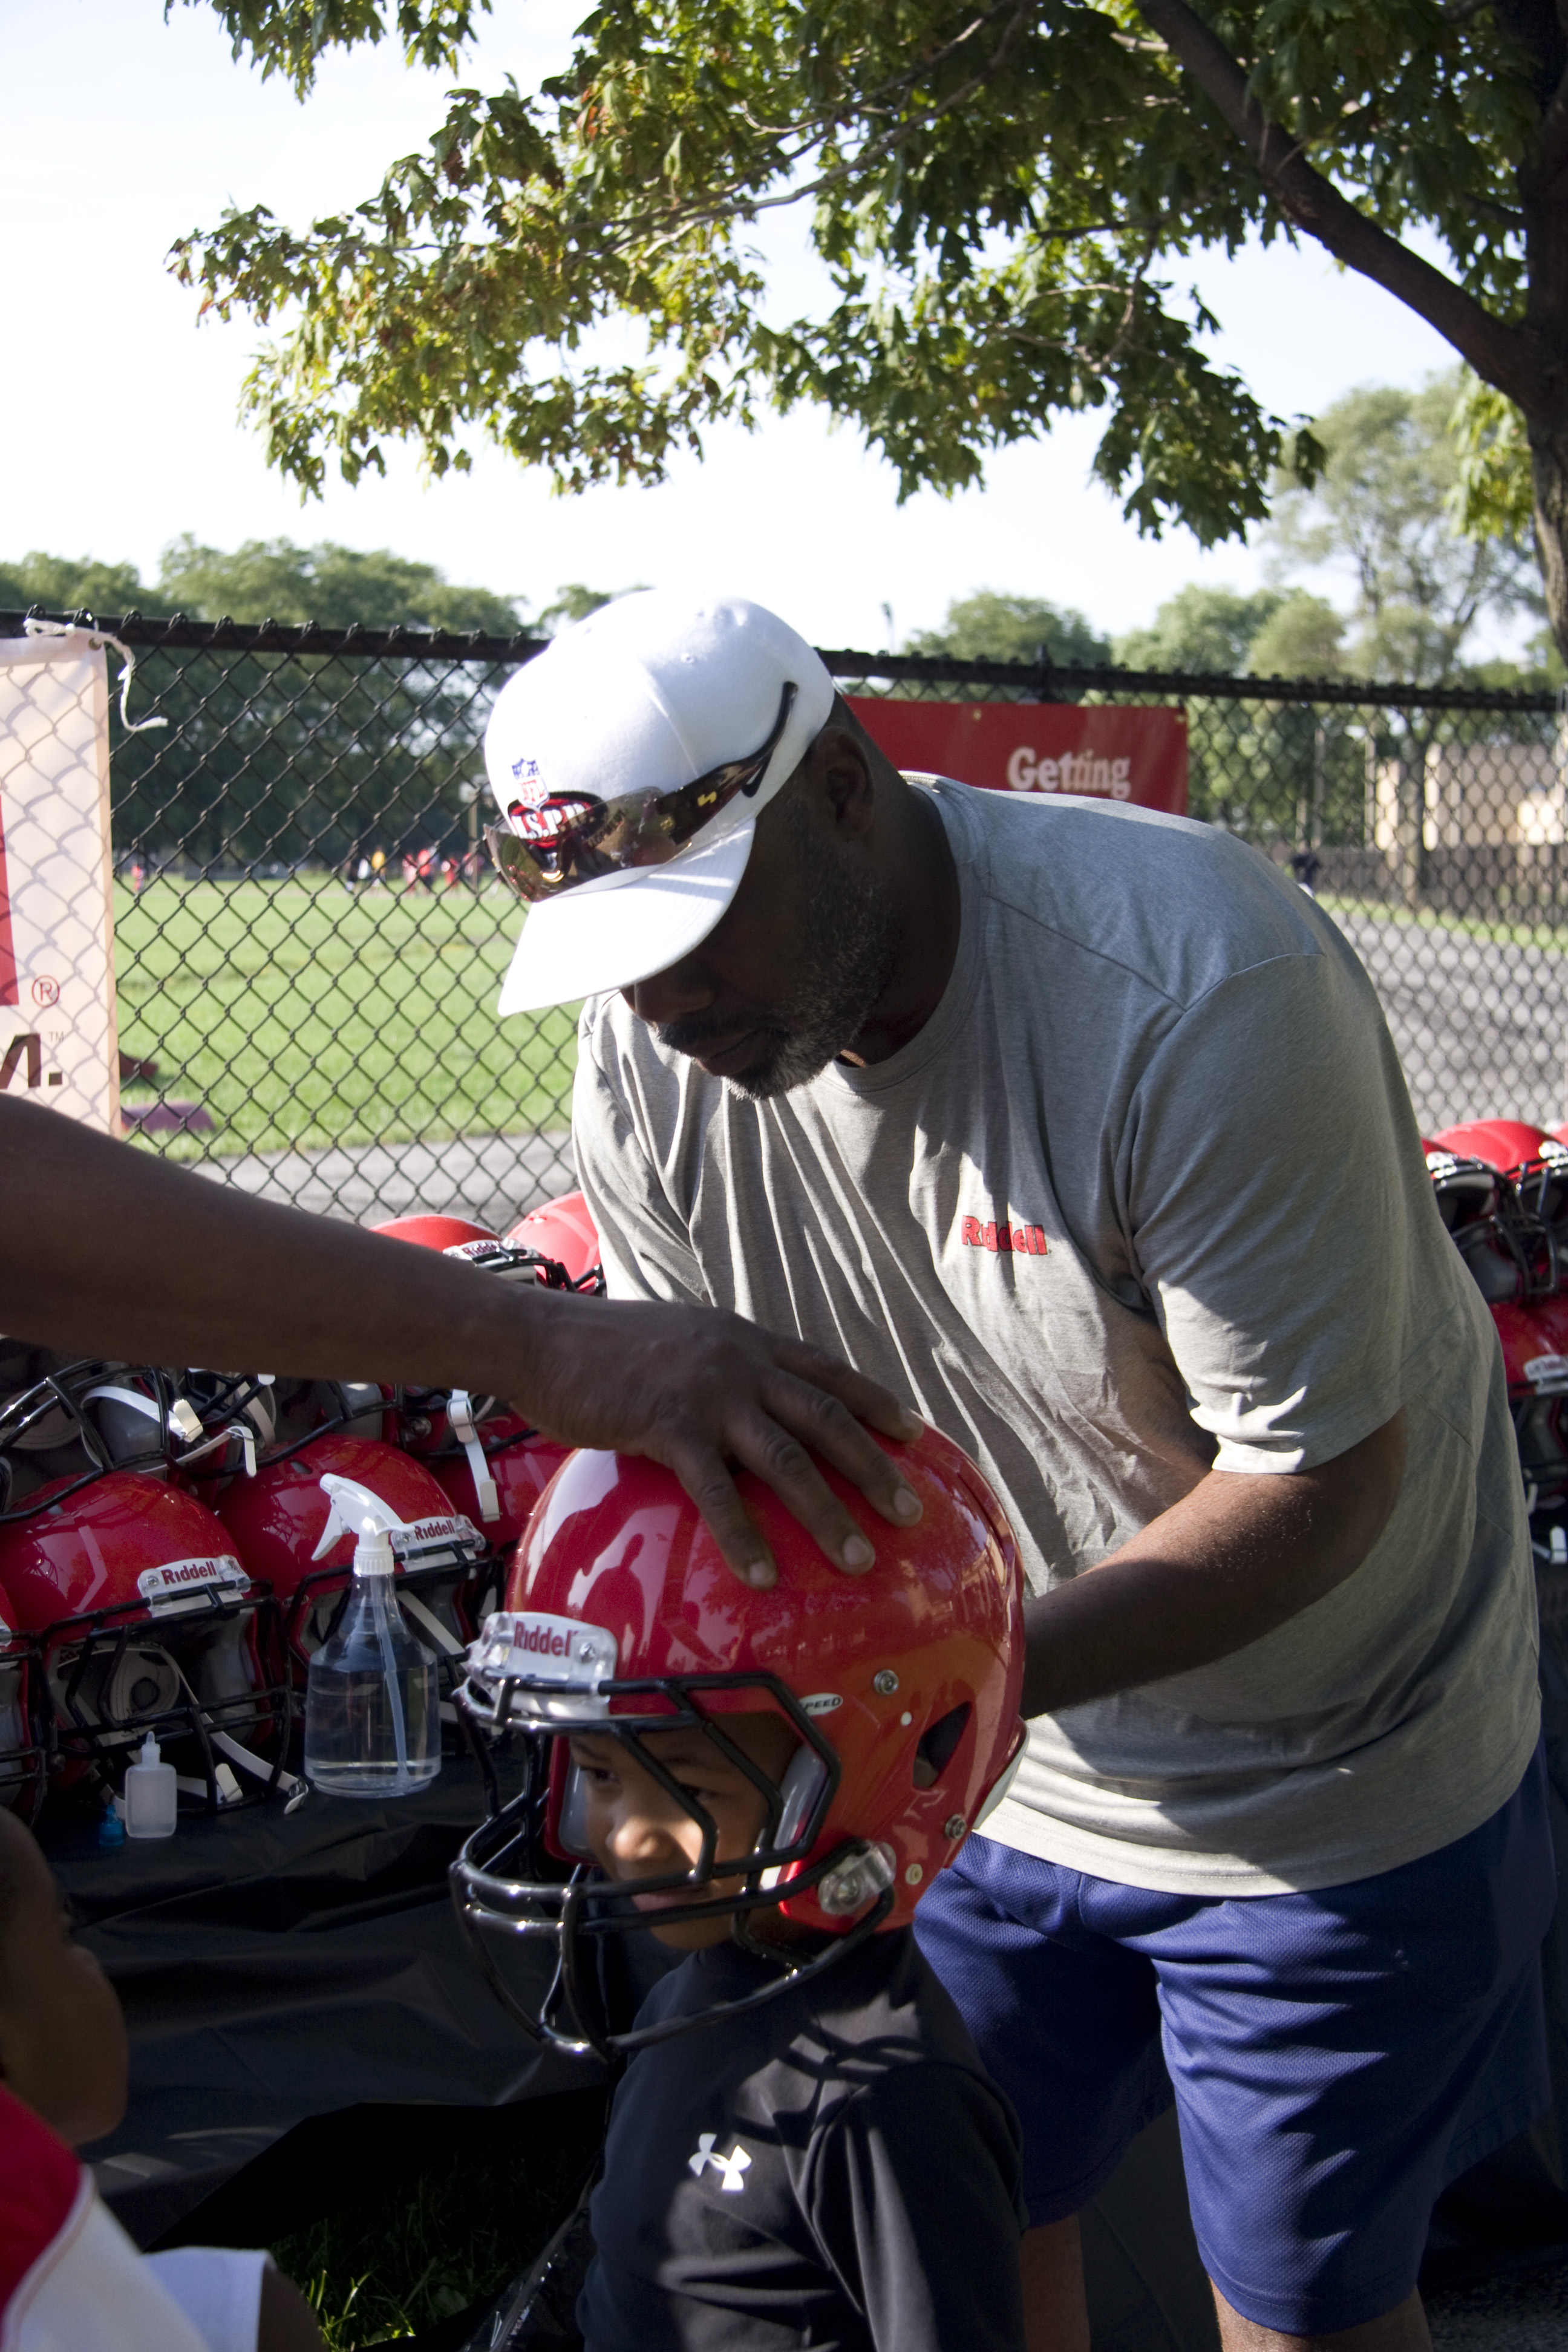 Riddell employee, Milton Biggins, helps CYSO youth football player with a helmet fitting